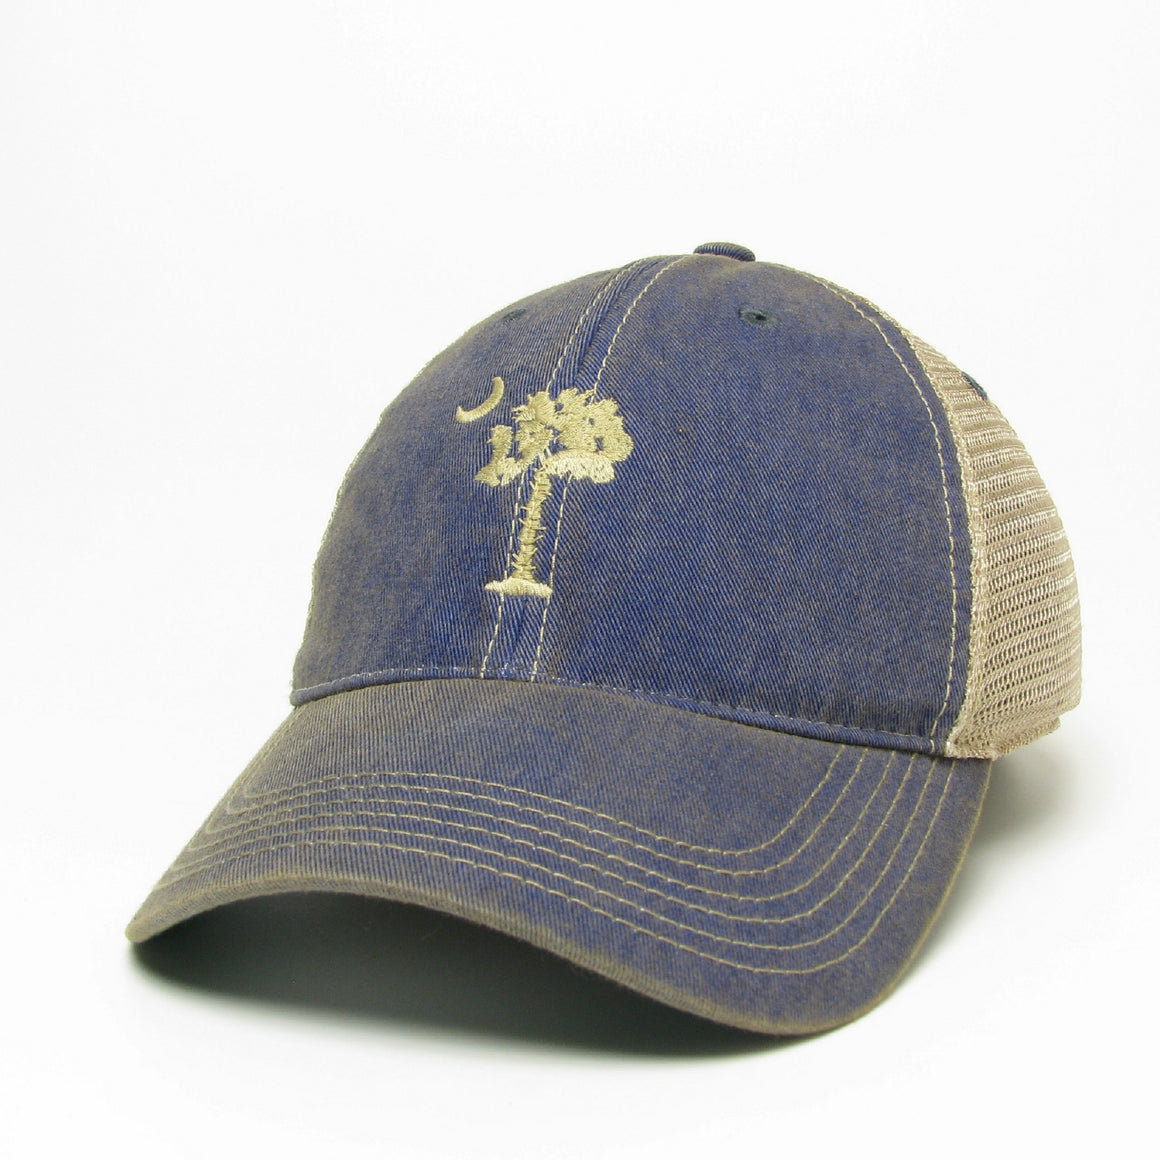 South Carolina Palmetto Tree and Moon Hat - ADI01290